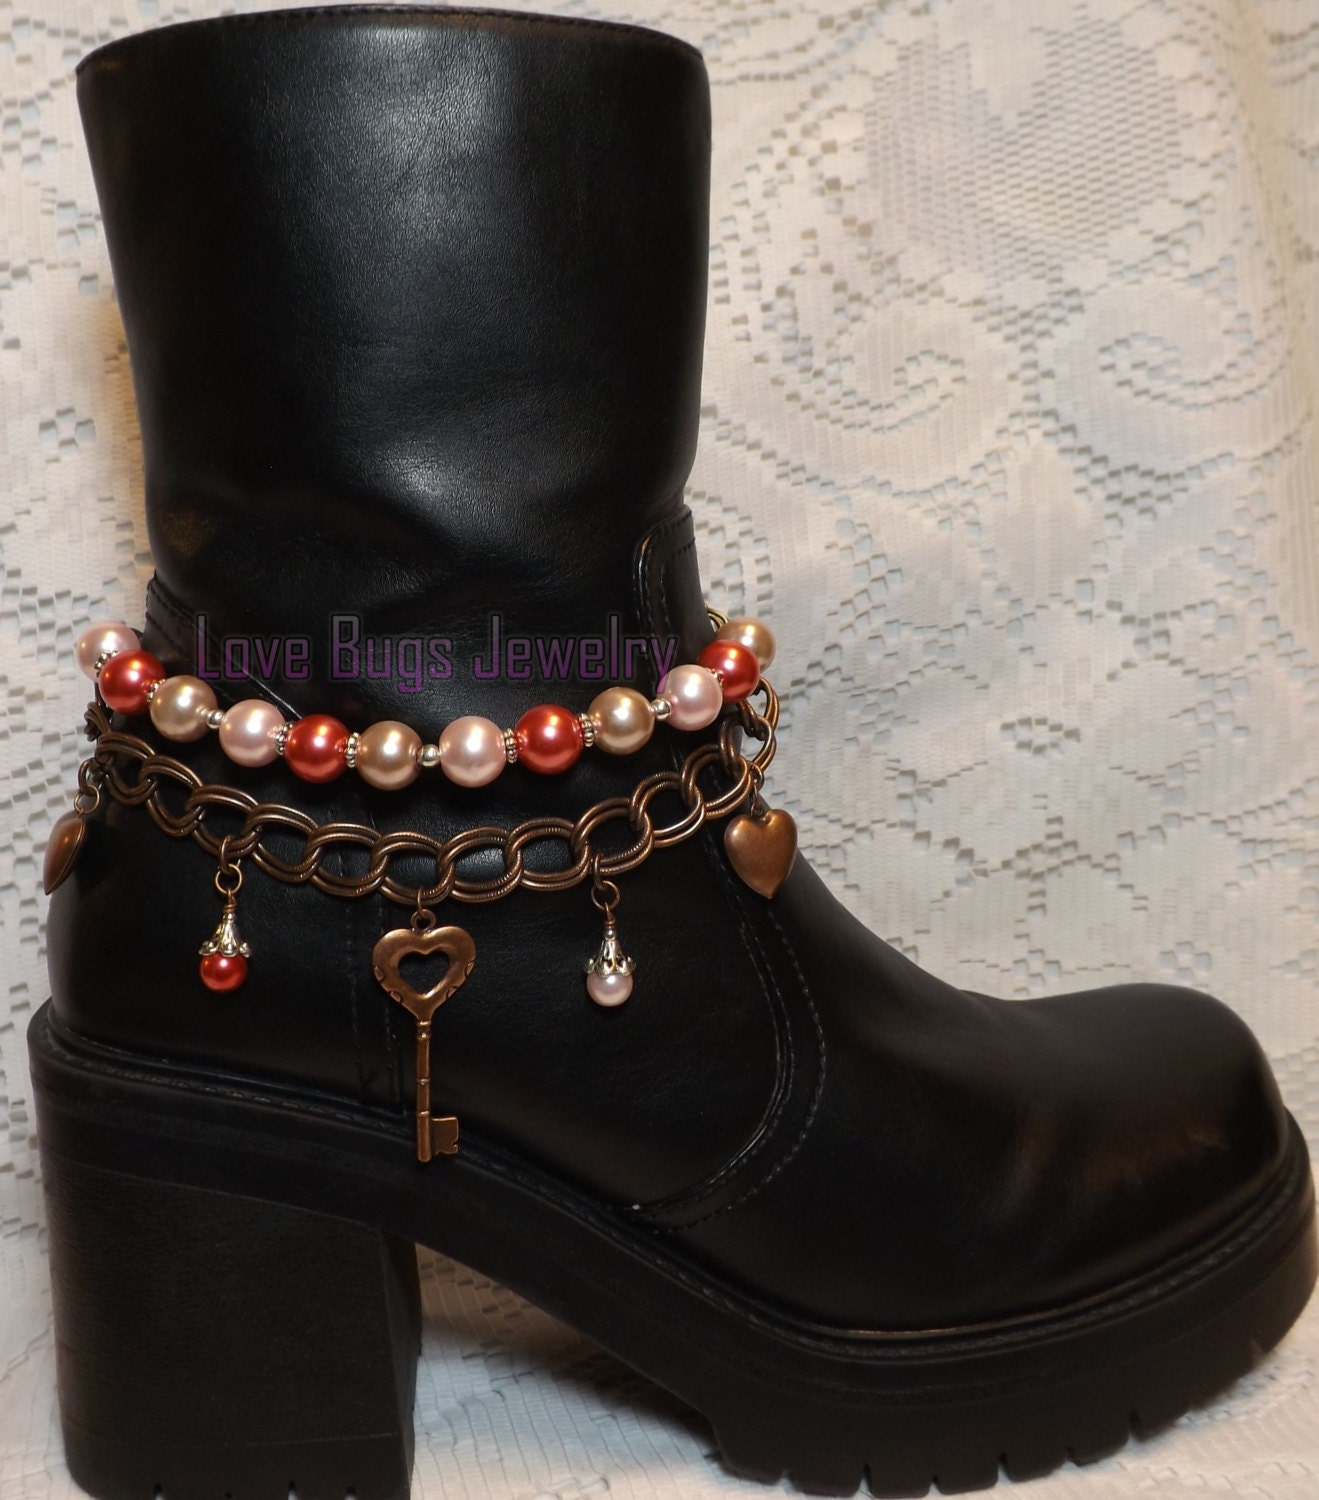 key boot jewelry boot bracelet boot bling boot jewelry